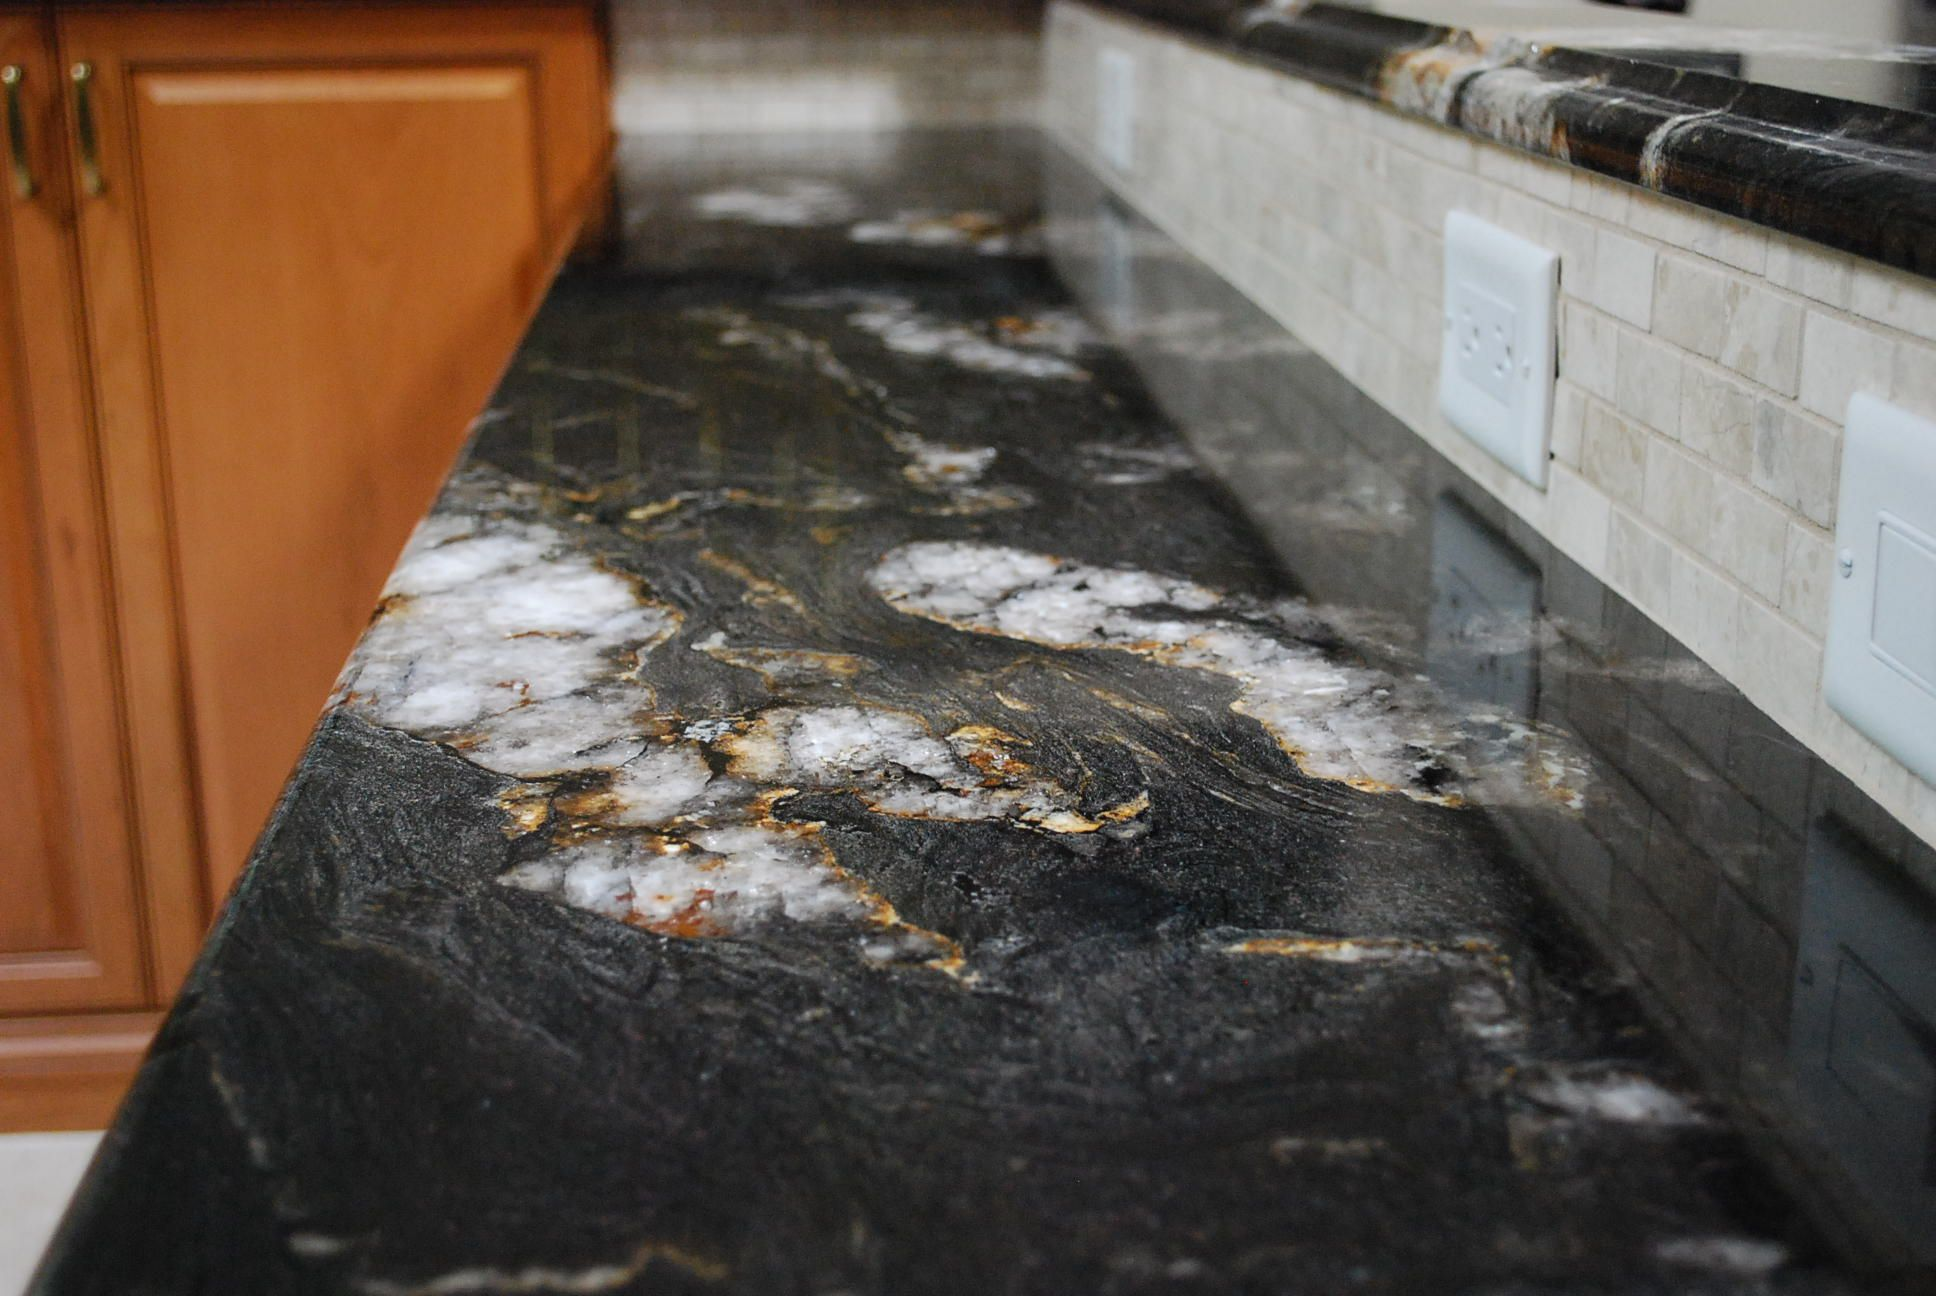 Titanium Black Granite For Masterbath Granite Countertops Titanium Granite Granite Kitchen Island